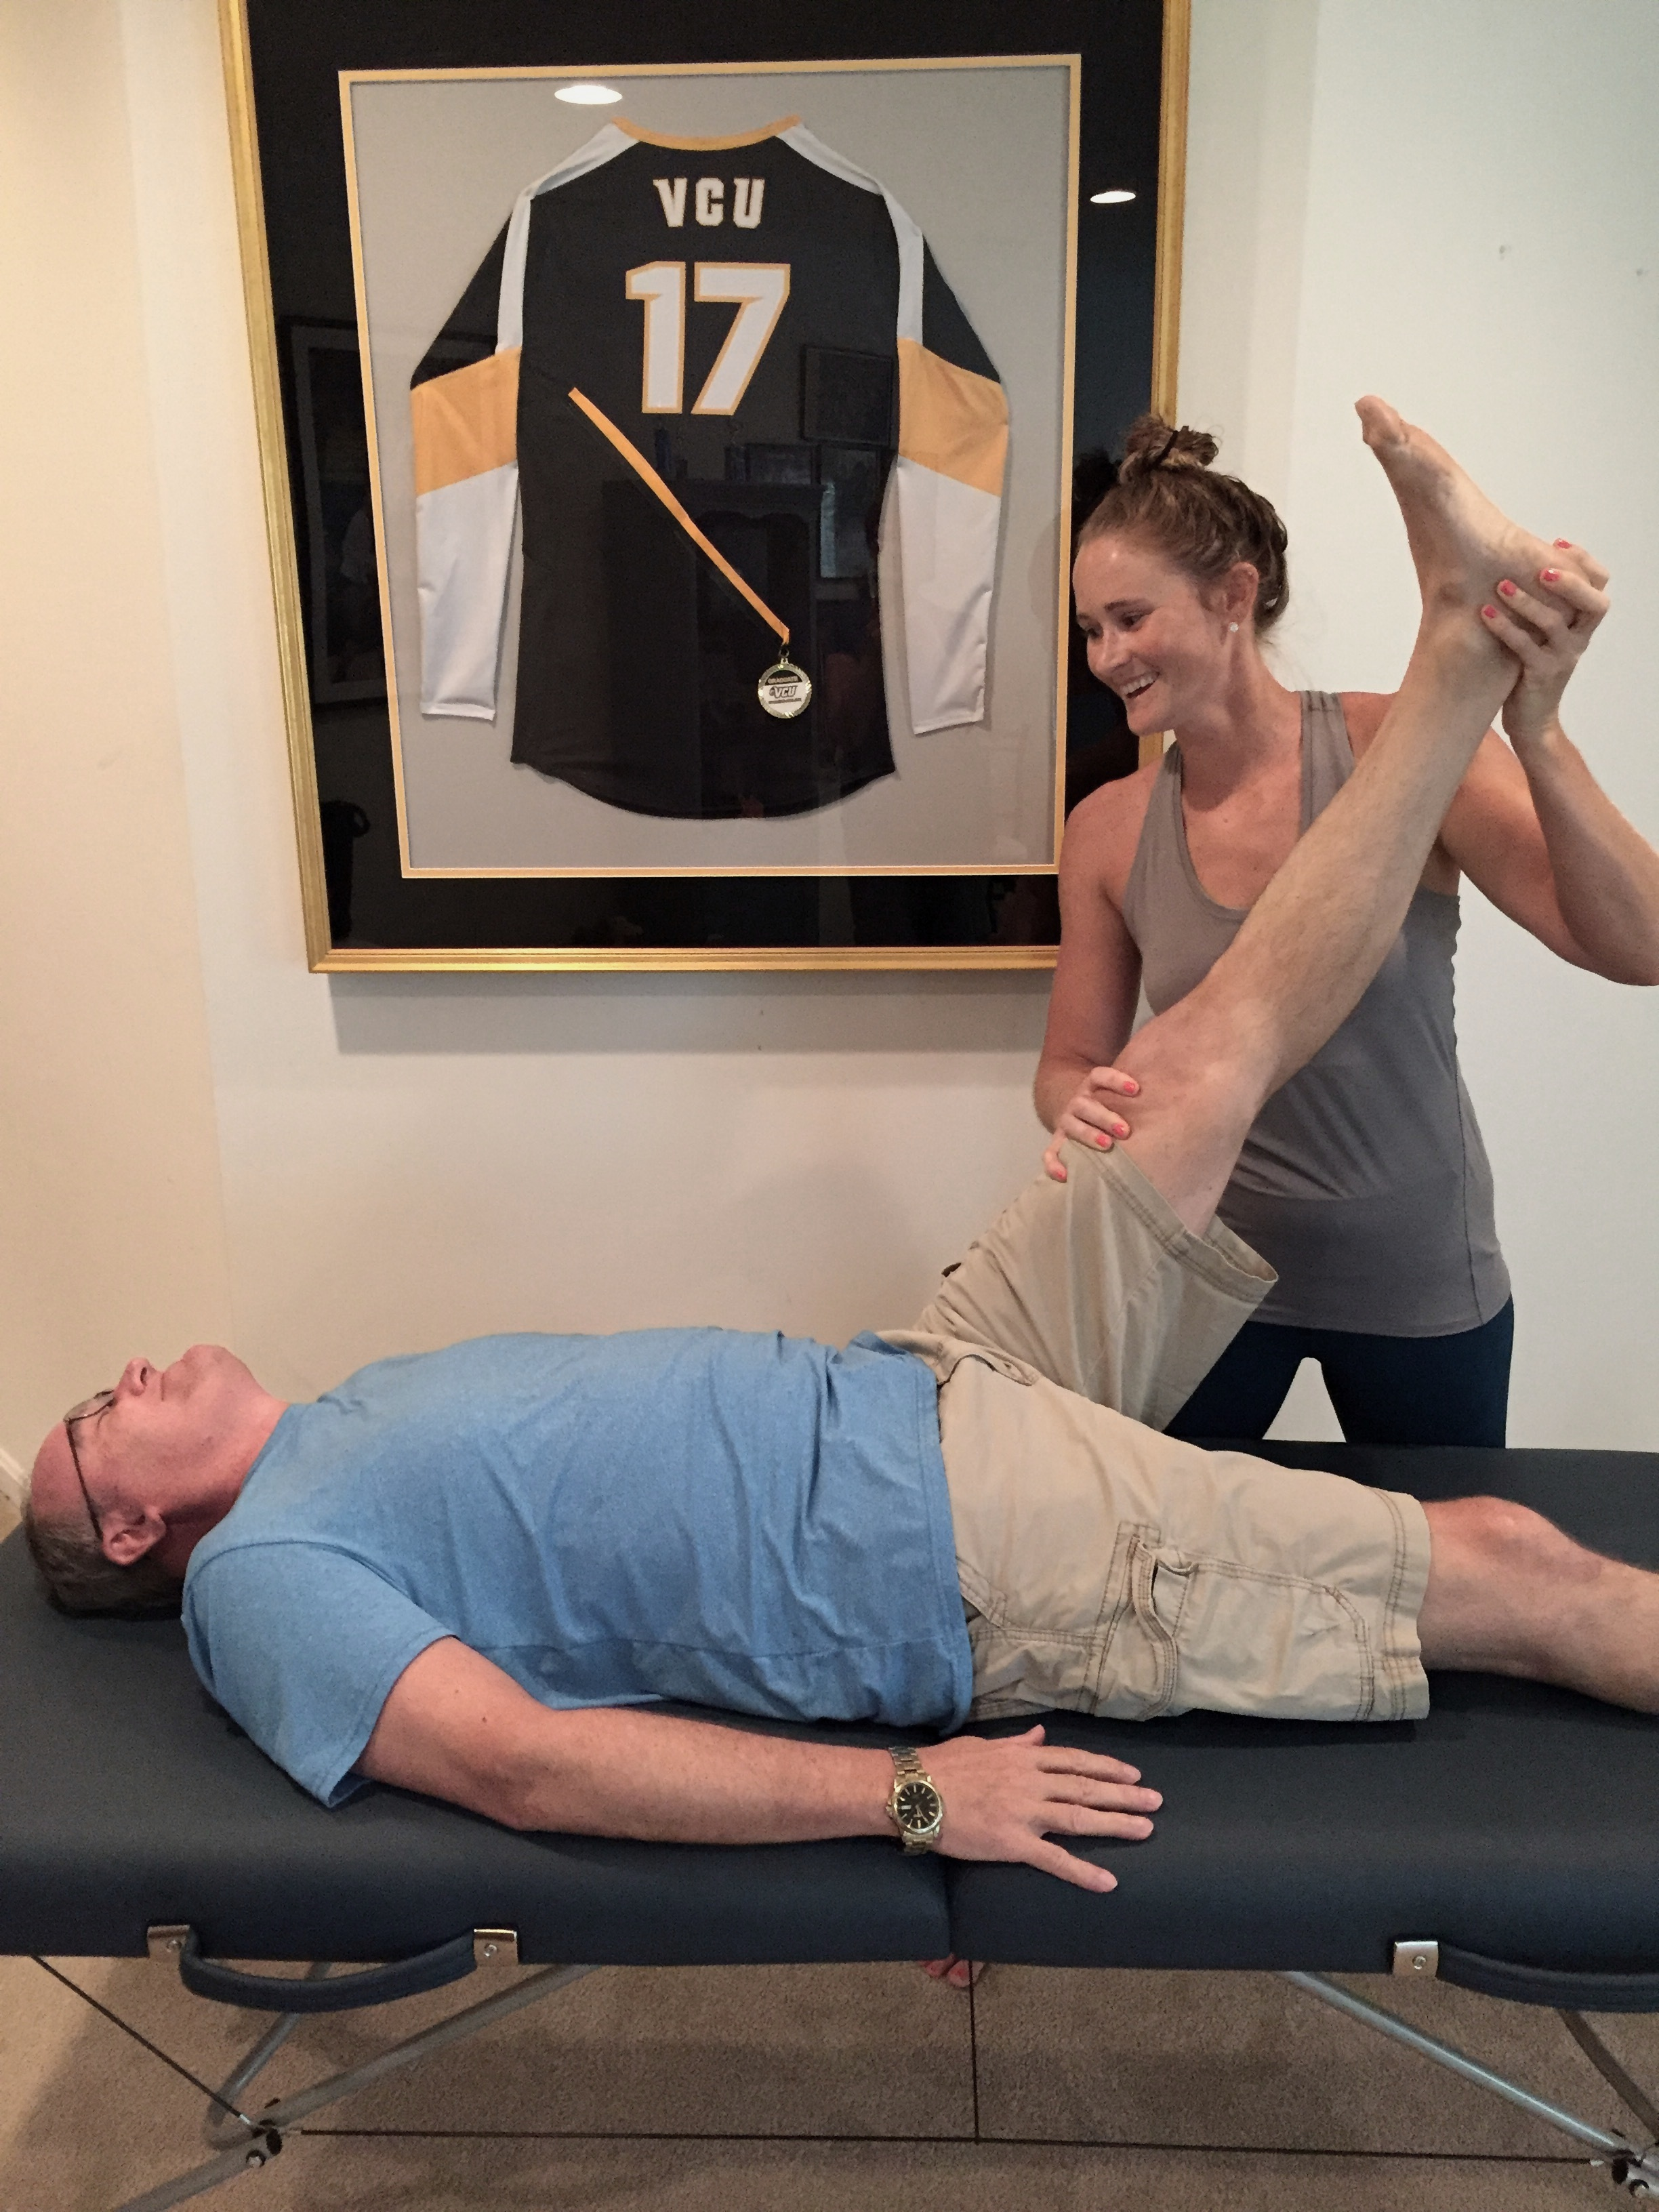 Sports PT Lab provides solutions to back pain that do not involve pain medication or surgery. - Back pain can include a whole host of diagnosis and each has a different treatment approach. You cannot do the same thing for disc herniations as you do for arthritis or sacral instability. It's important to look at the whole picture and determine the root cause before proceeding with a treatment plan. Rest, medications, or injections alone will not solve the problem or keep it from returning.This is why Sports PT Lab works one-on-one with clients to create a specific plan for each individual.If you have questions about your specific back pain issue and want to understand the best treatment options for your condition, then please fill out the inquiry form. I want to hear from you and help provide clarity.